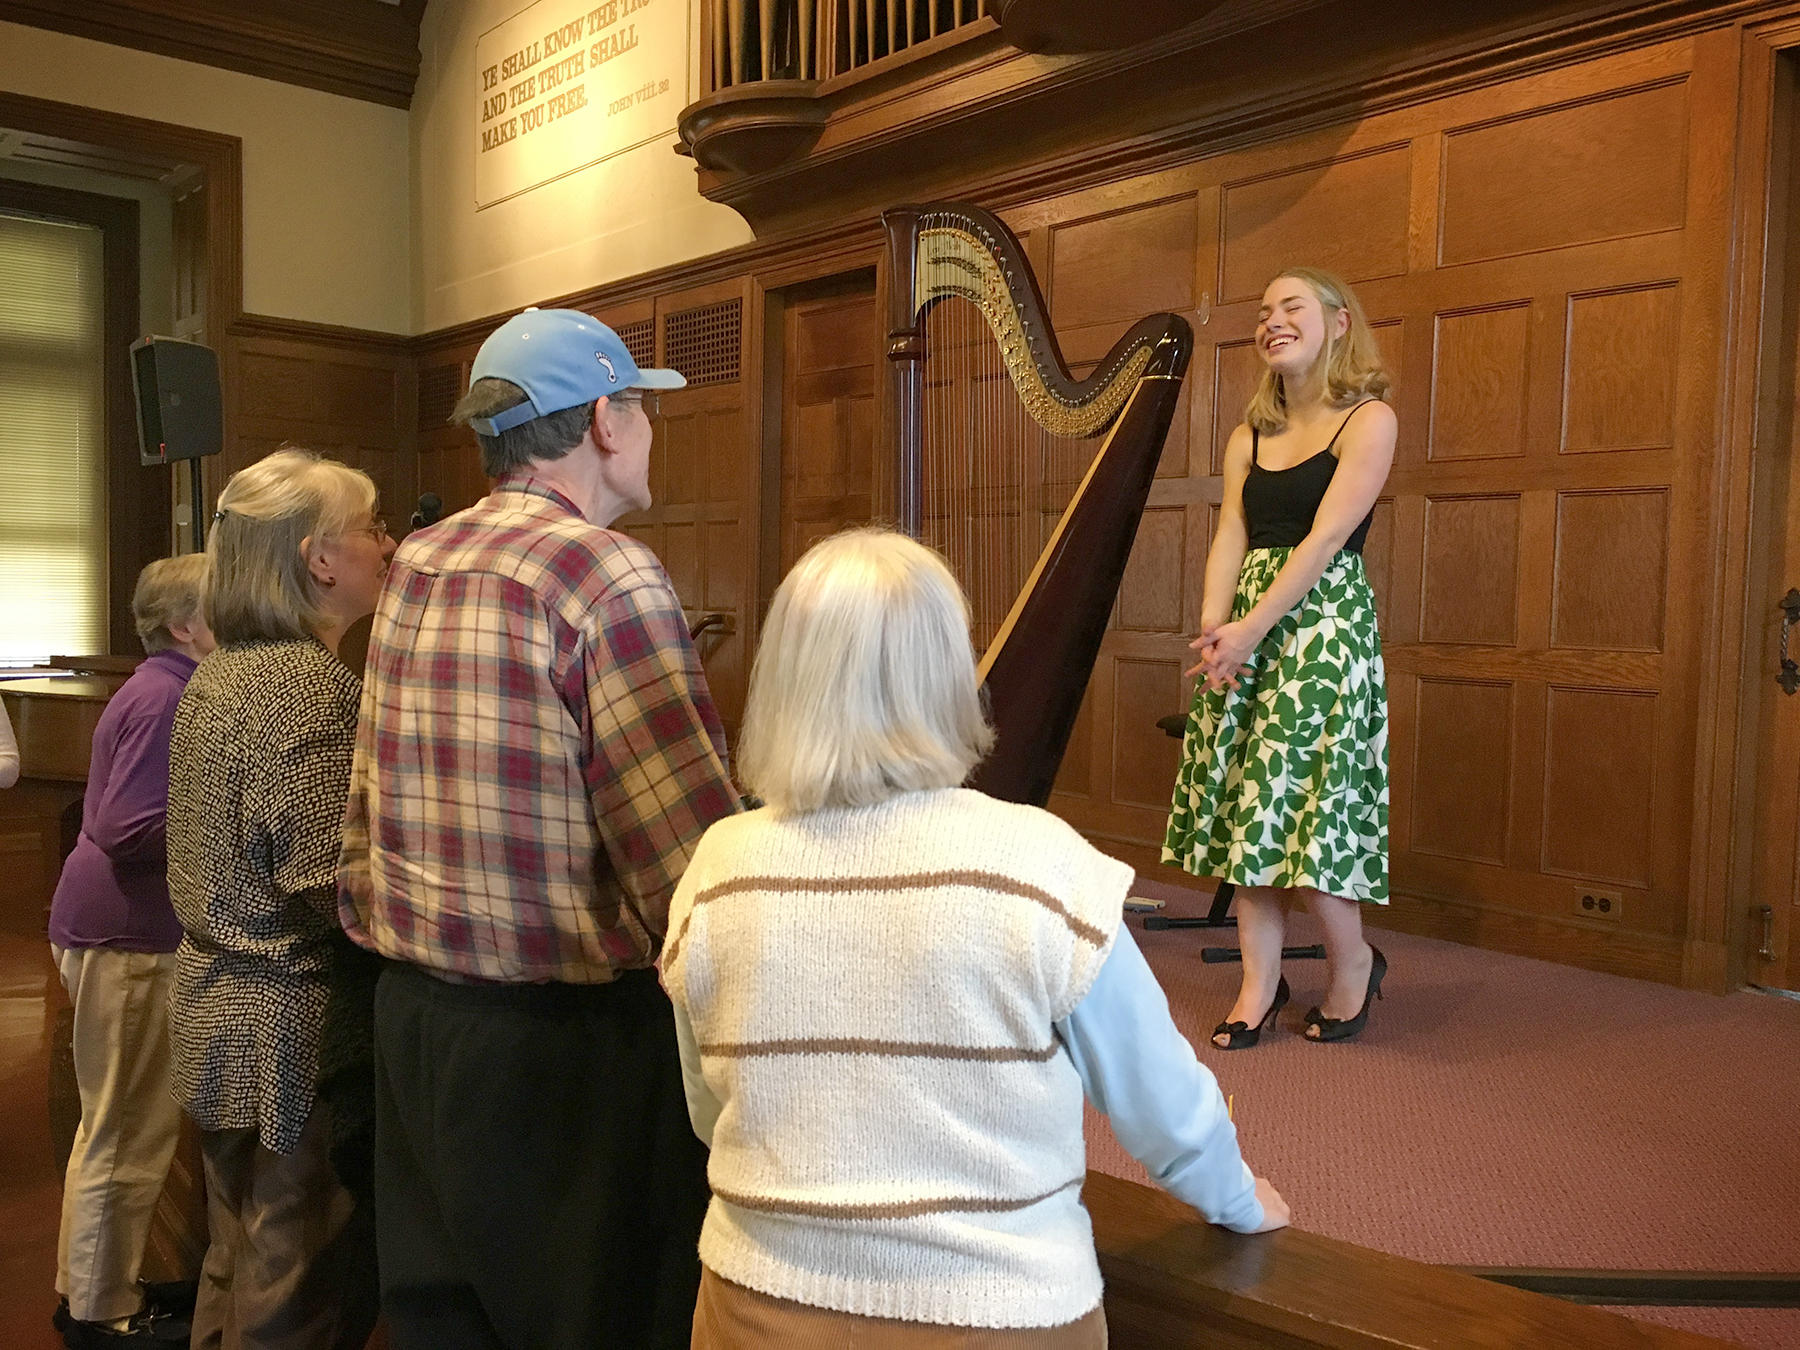 A C P P harpist smiles after a performance